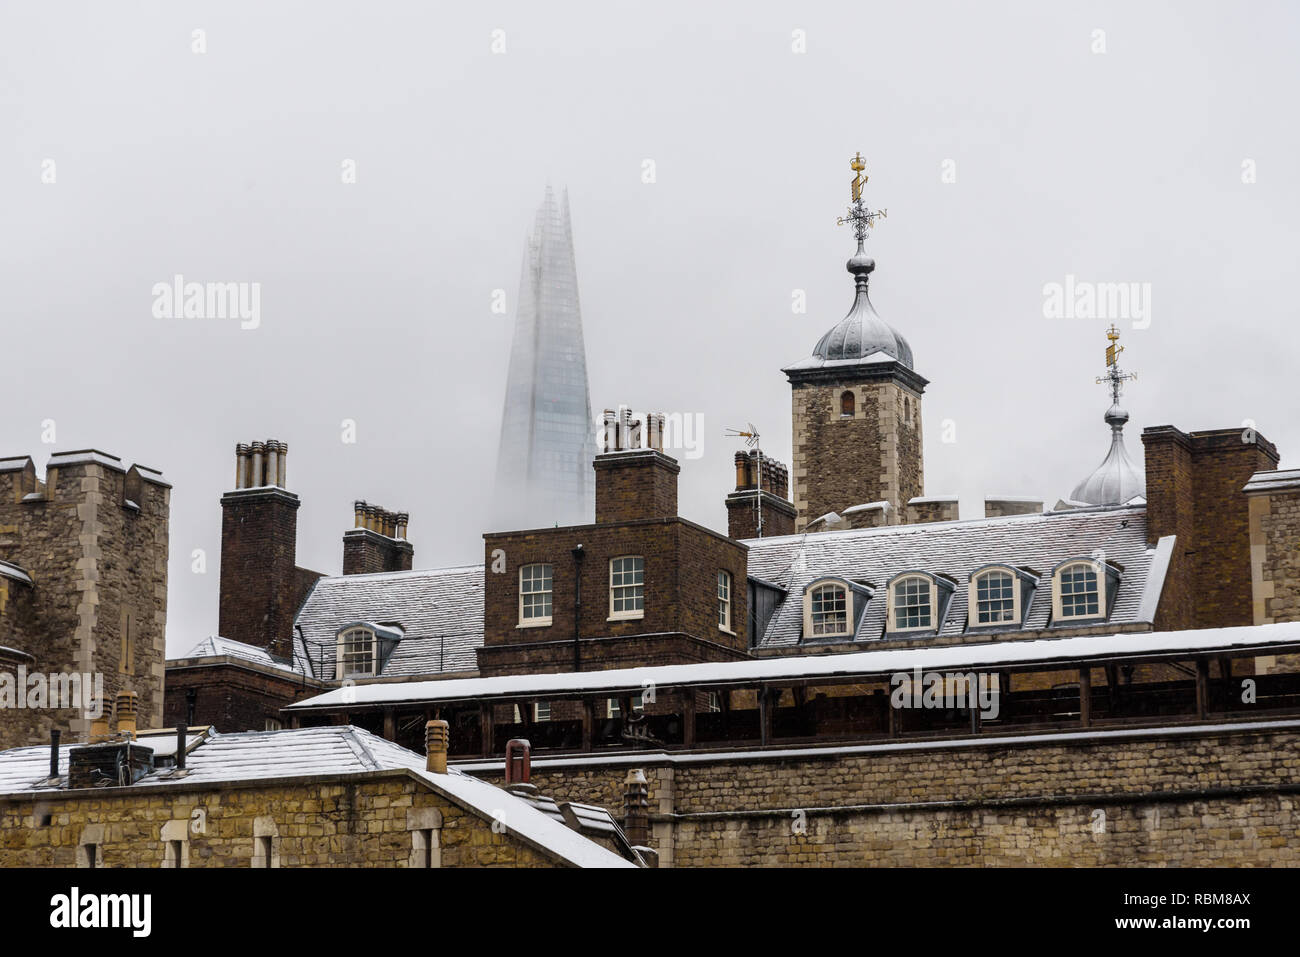 Snow in London. The roofs of Tower of London covered in fresh white snow. In the background the Shard, the tallest skyscraper in Europe. - Stock Image